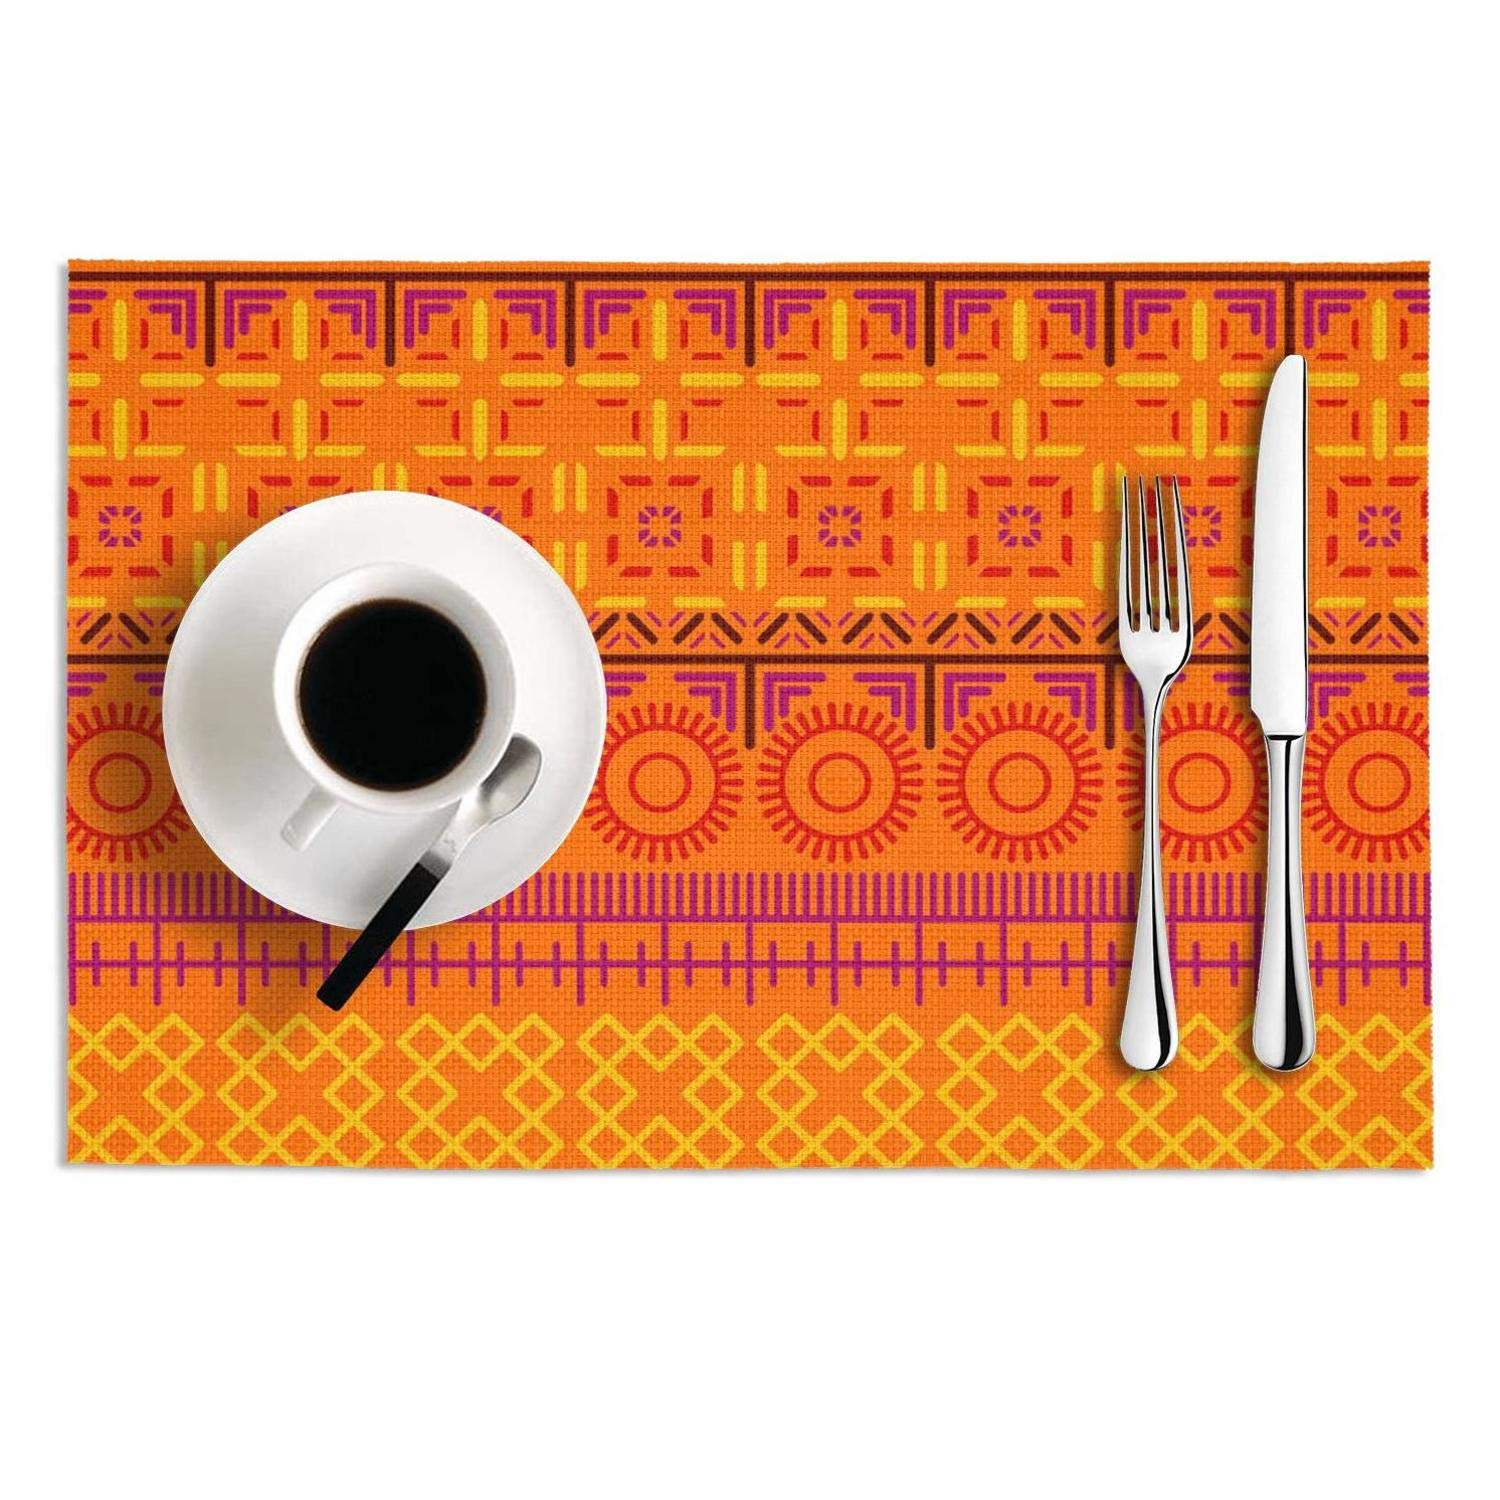 Go Hps2 Placemats Set of 2 Orange Bohemian Style Heat Insulation Funny Printed Waterproof PVC Kitchen Mat